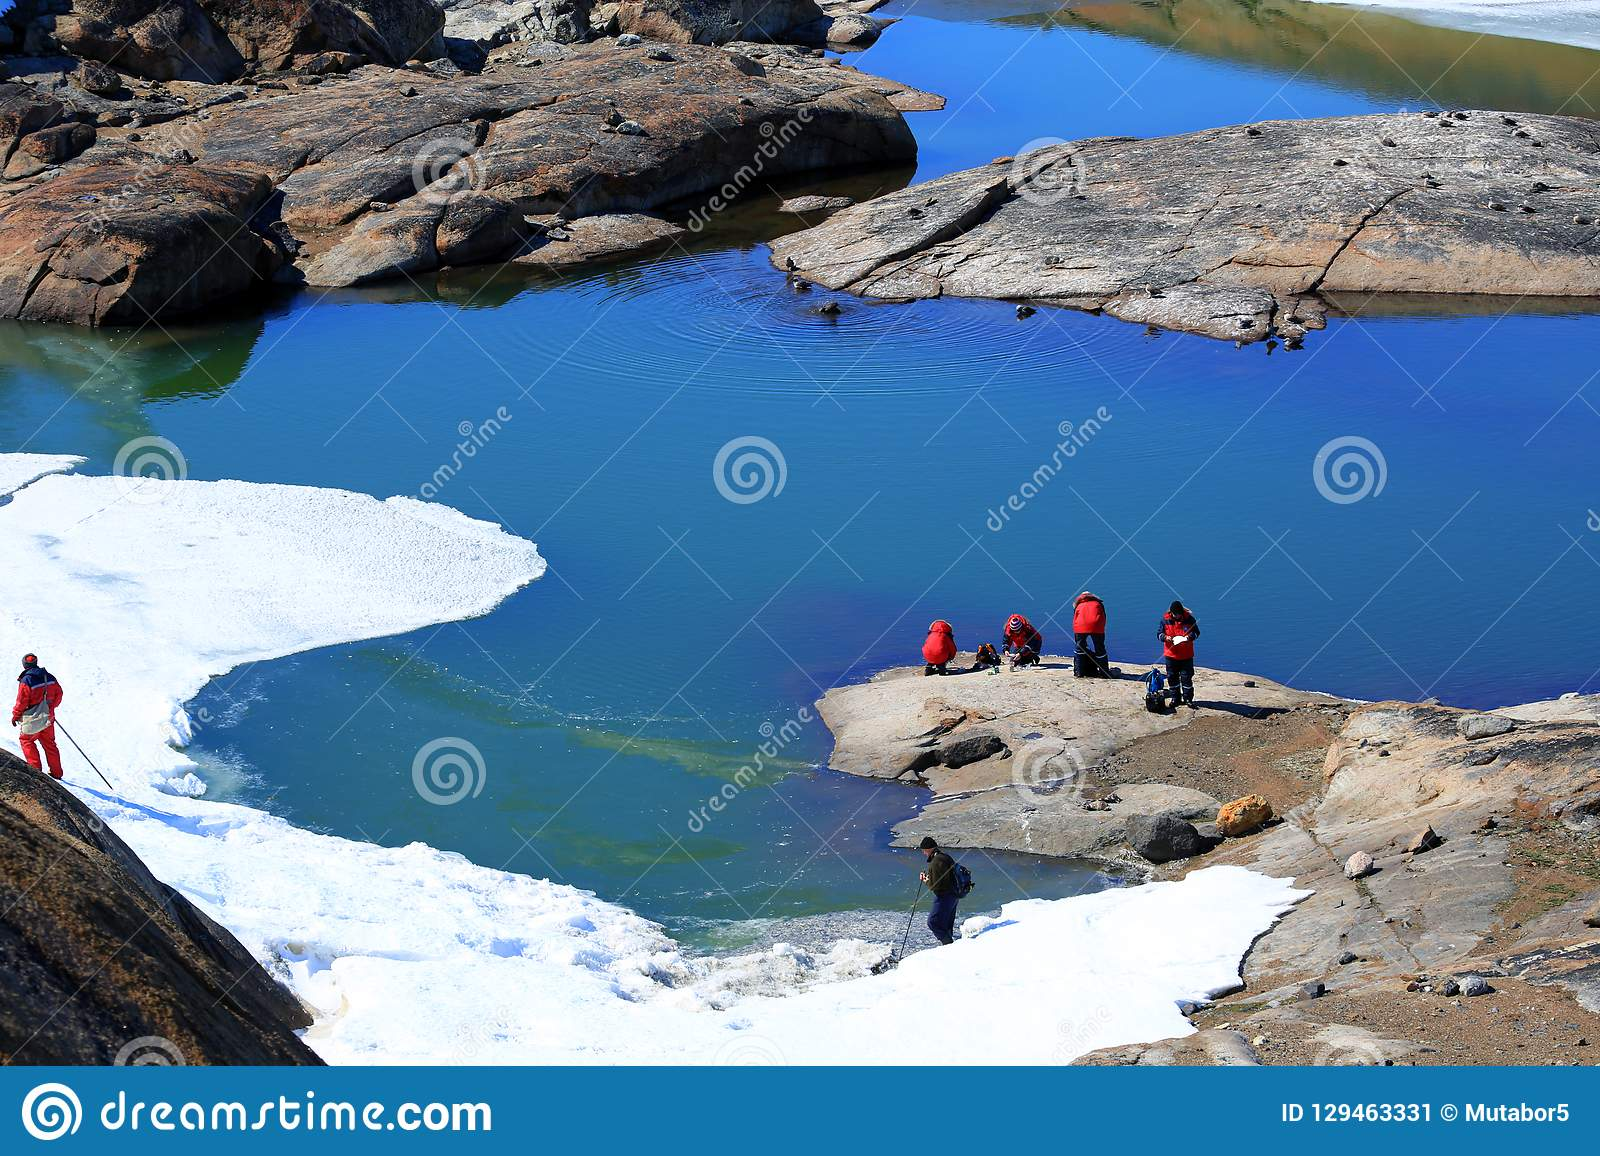 People, scientists, researchers are on the mountain of stone. Near the shore of the ocean and icebergs.